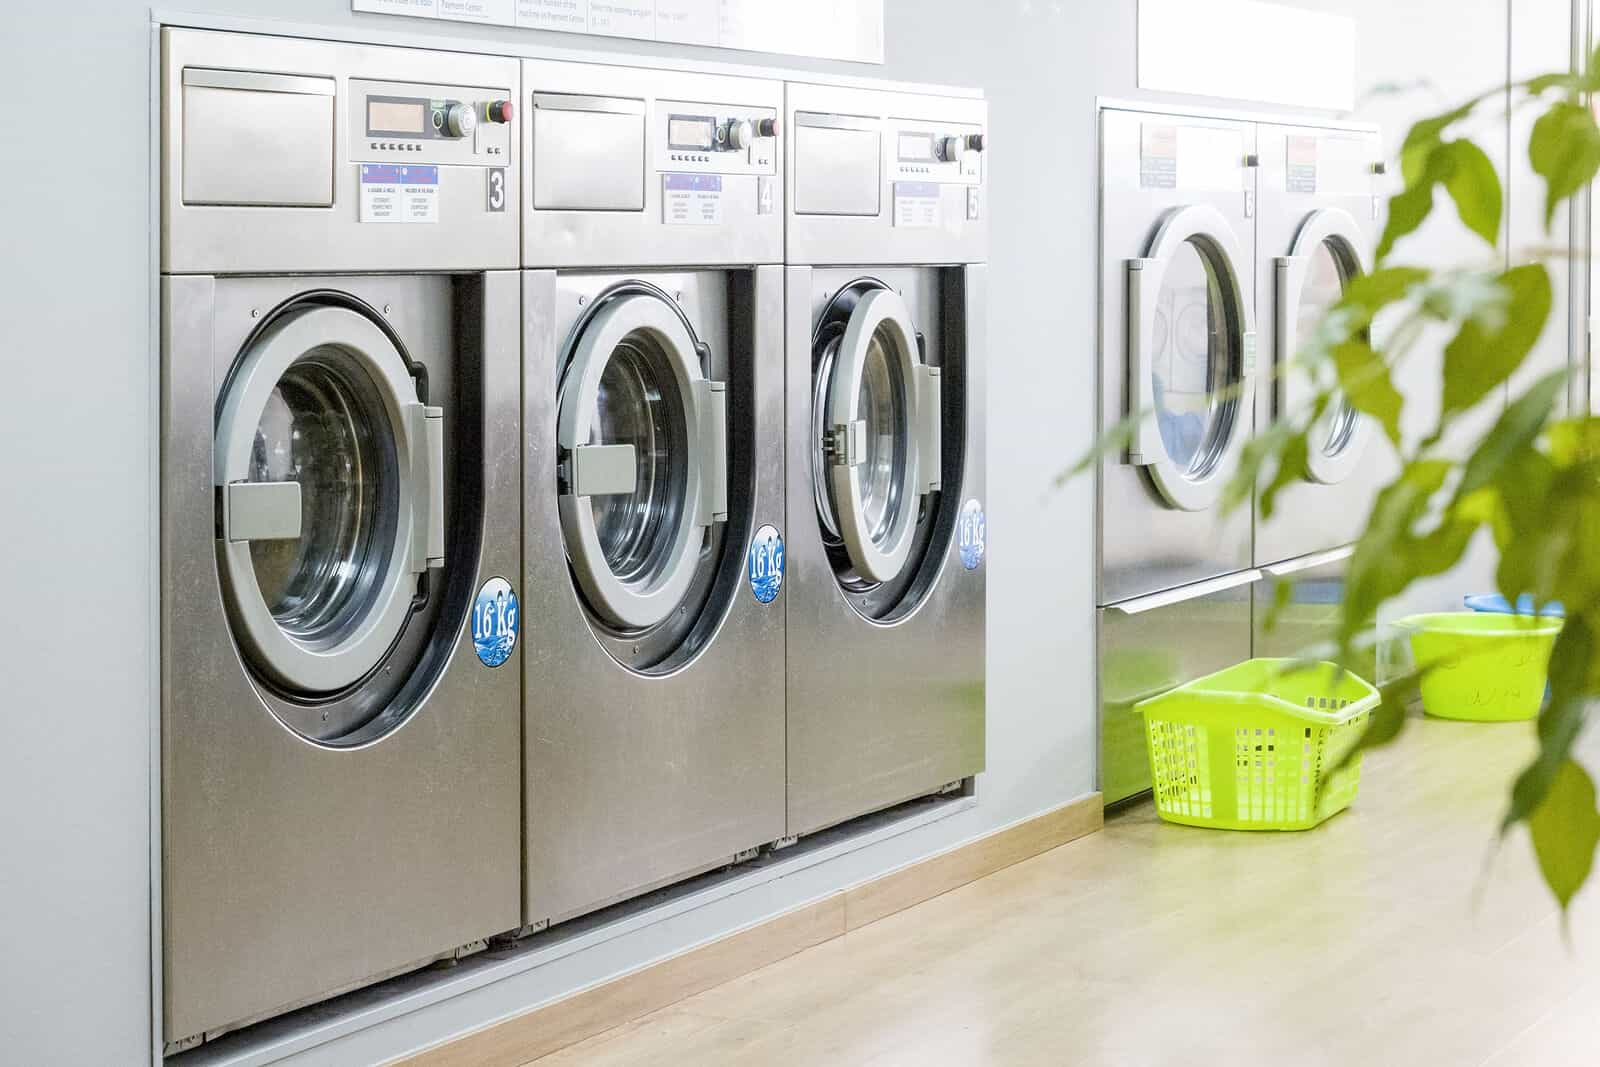 Washing machines in launderette